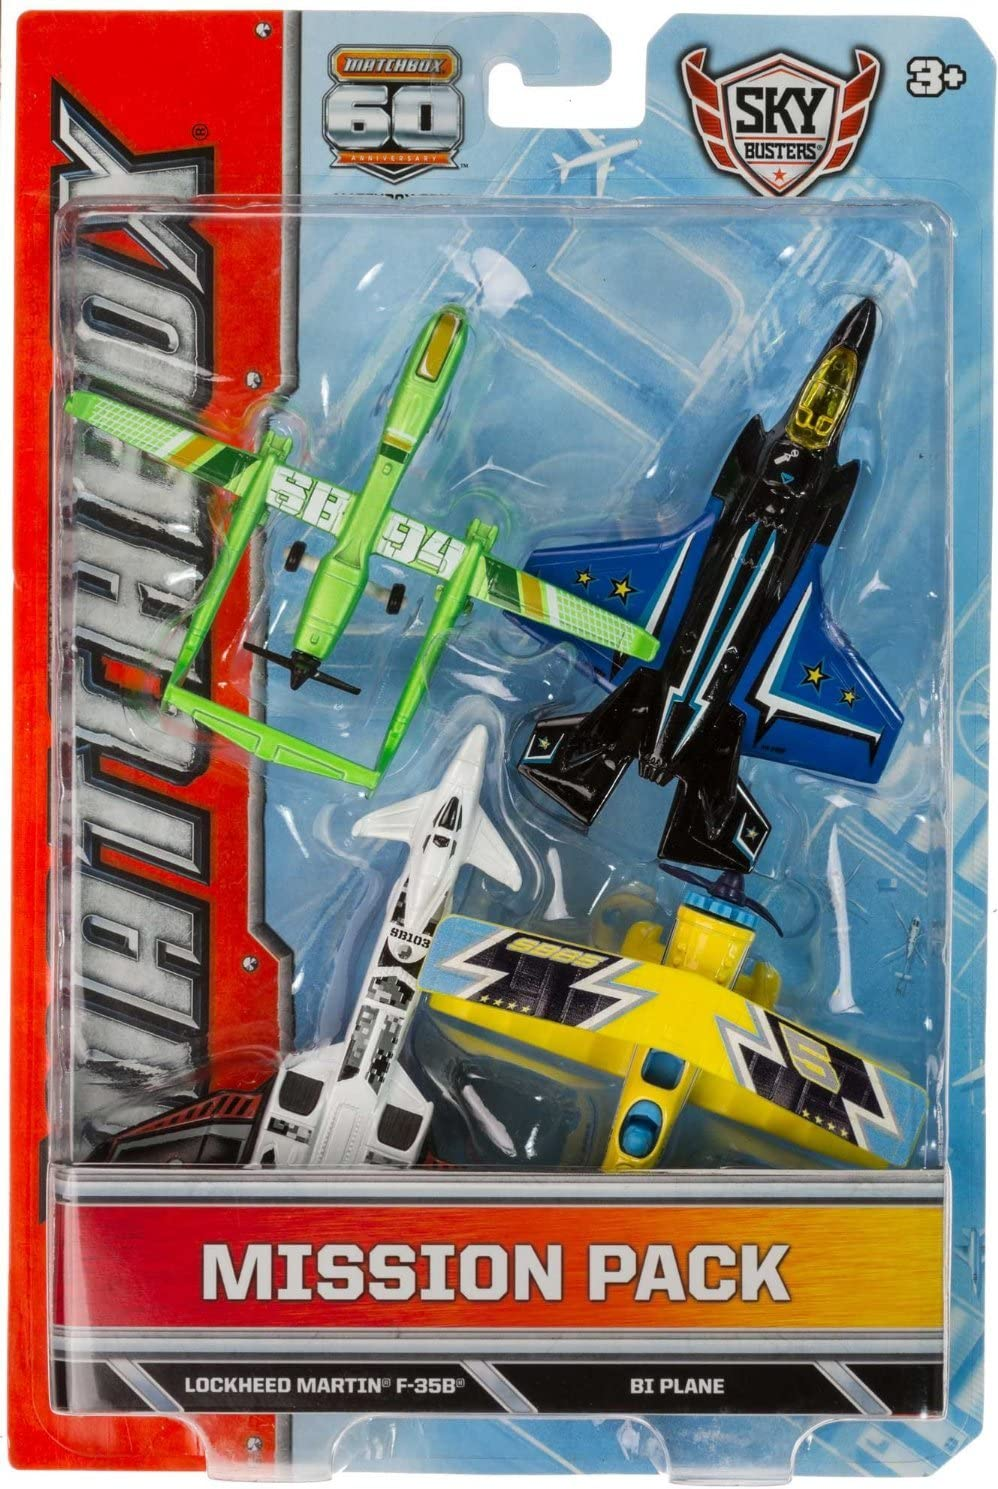 Twin Blast, Lockheed Martin F-35B, BI Plane, SB94 Drone Die-Cast Vehicle Pack: Matchbox Sky Busters Mission Pack Series by mattel: Amazon.es: Juguetes y juegos